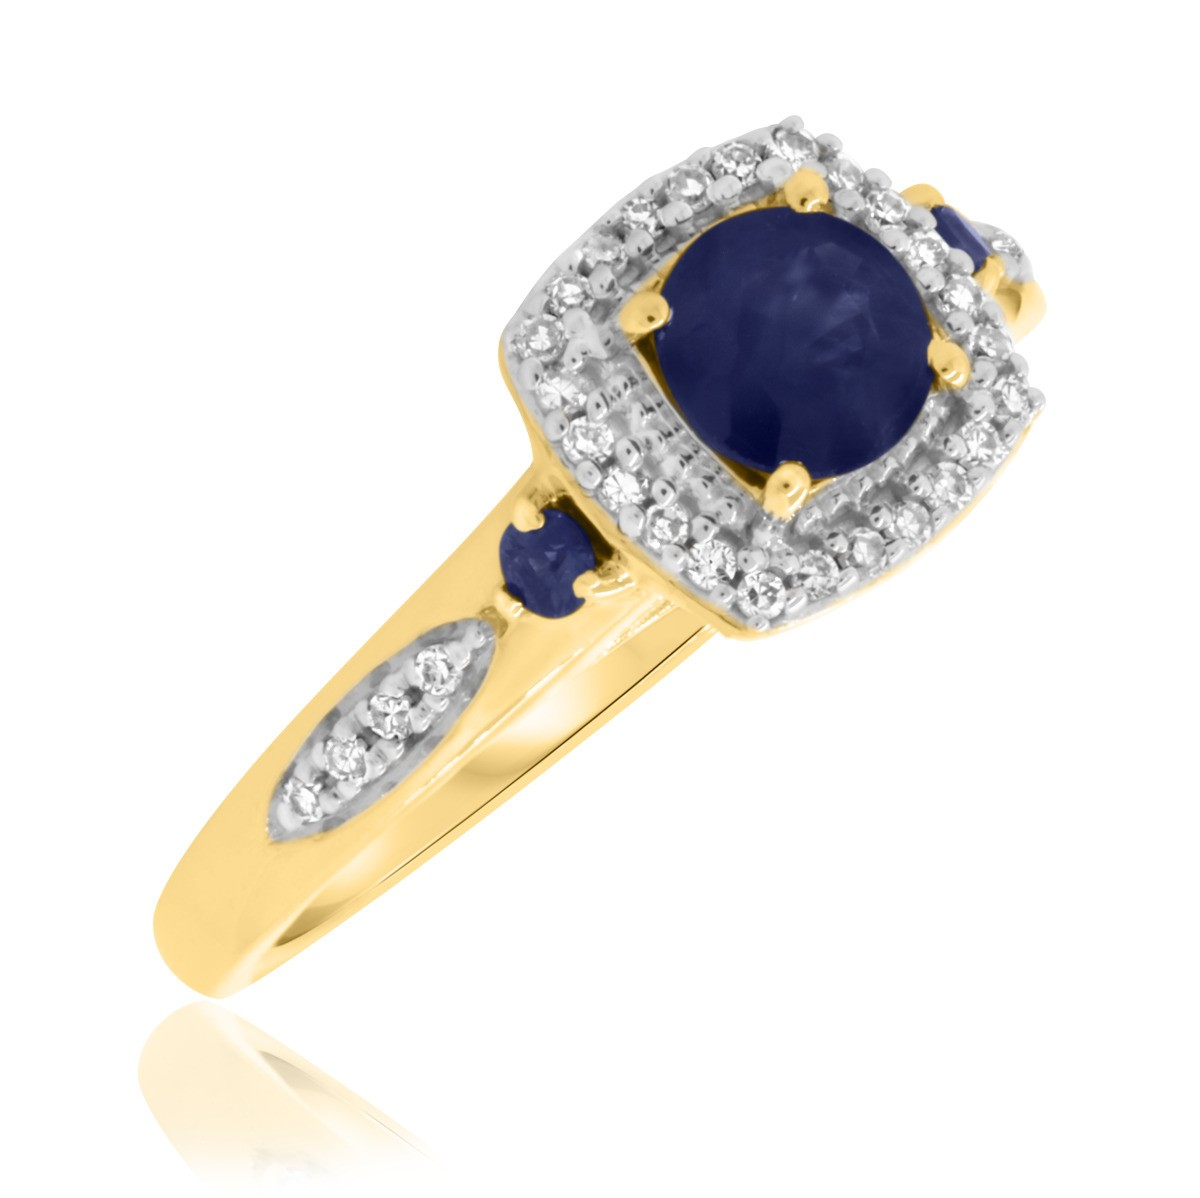 7/8 Carat T.W. Sapphire Engagement Ring 14K Yellow Gold